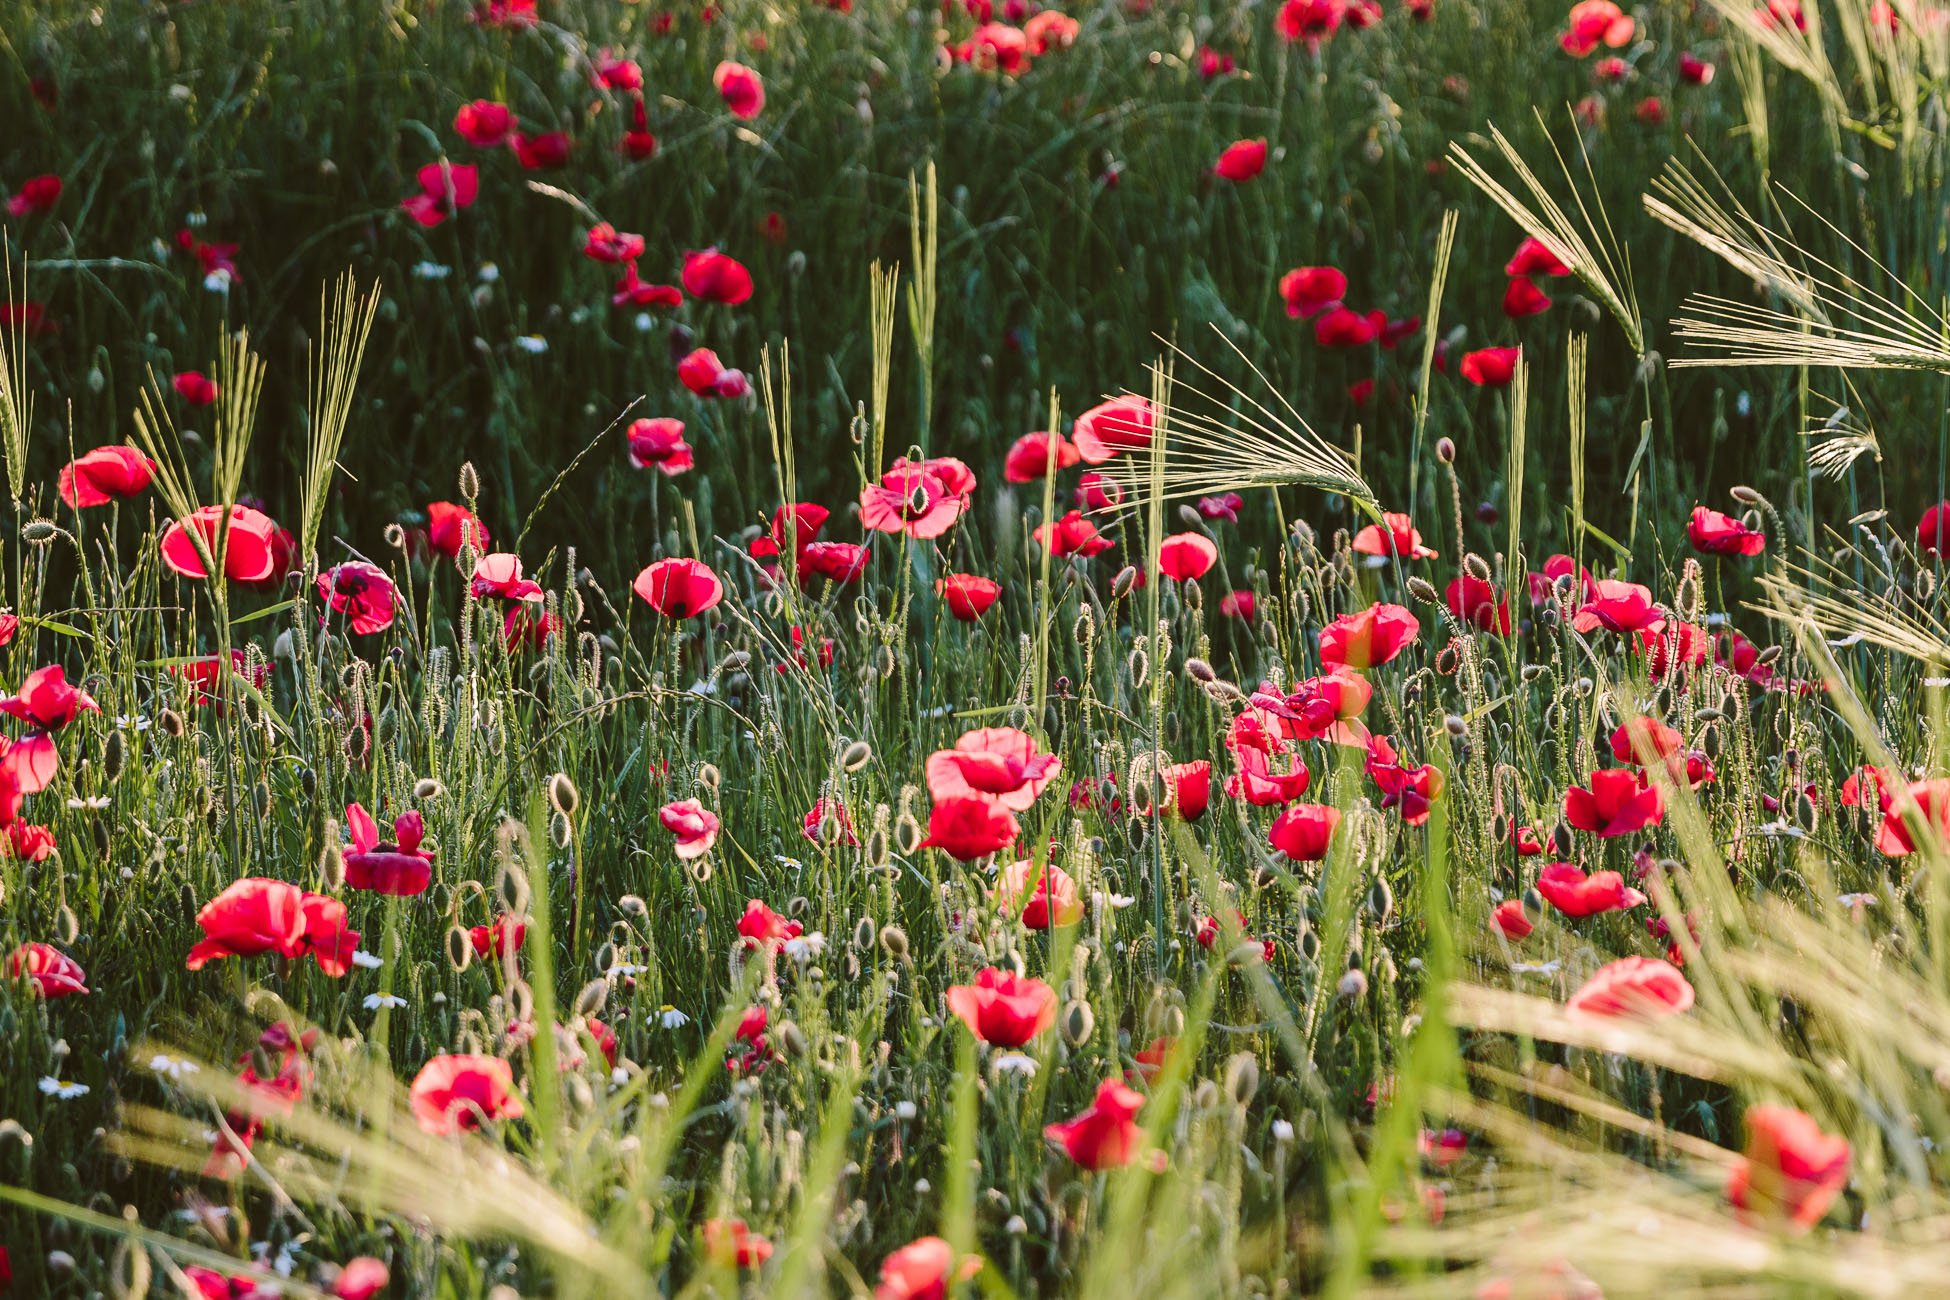 Poppies in bloom in the Provence in May